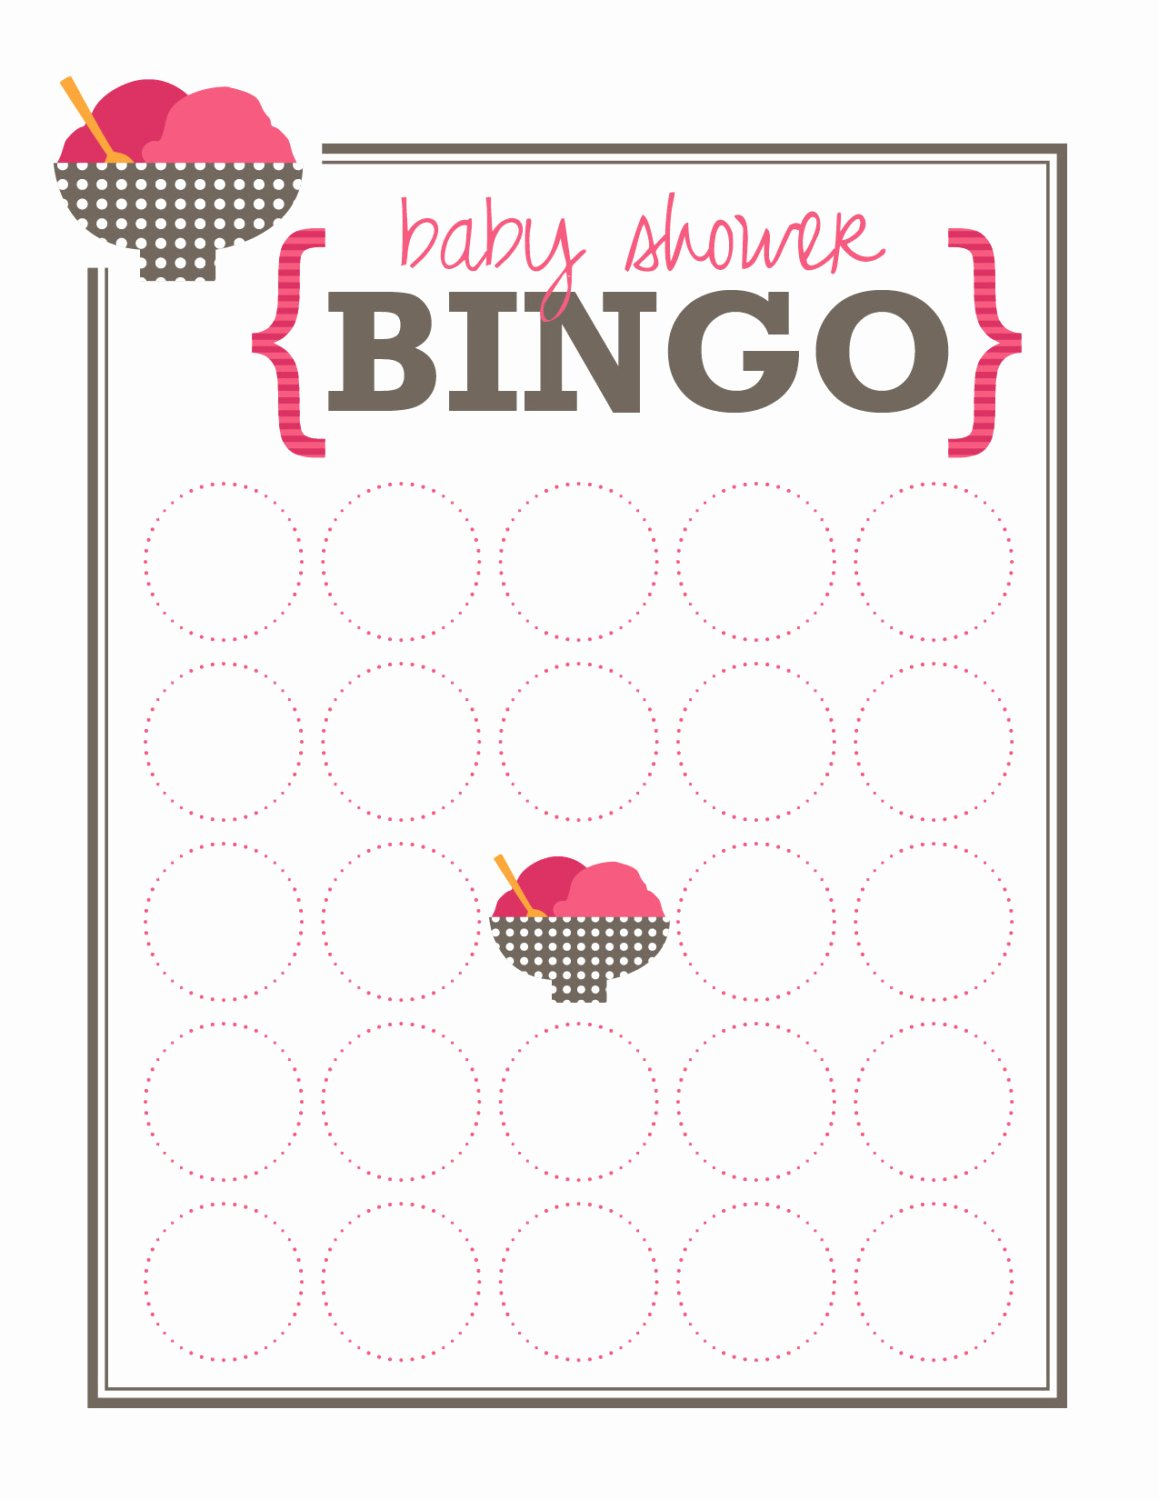 Baby Shower Bingo Generator Awesome Lanolindaof Bridal Shower Bingo Template Blank